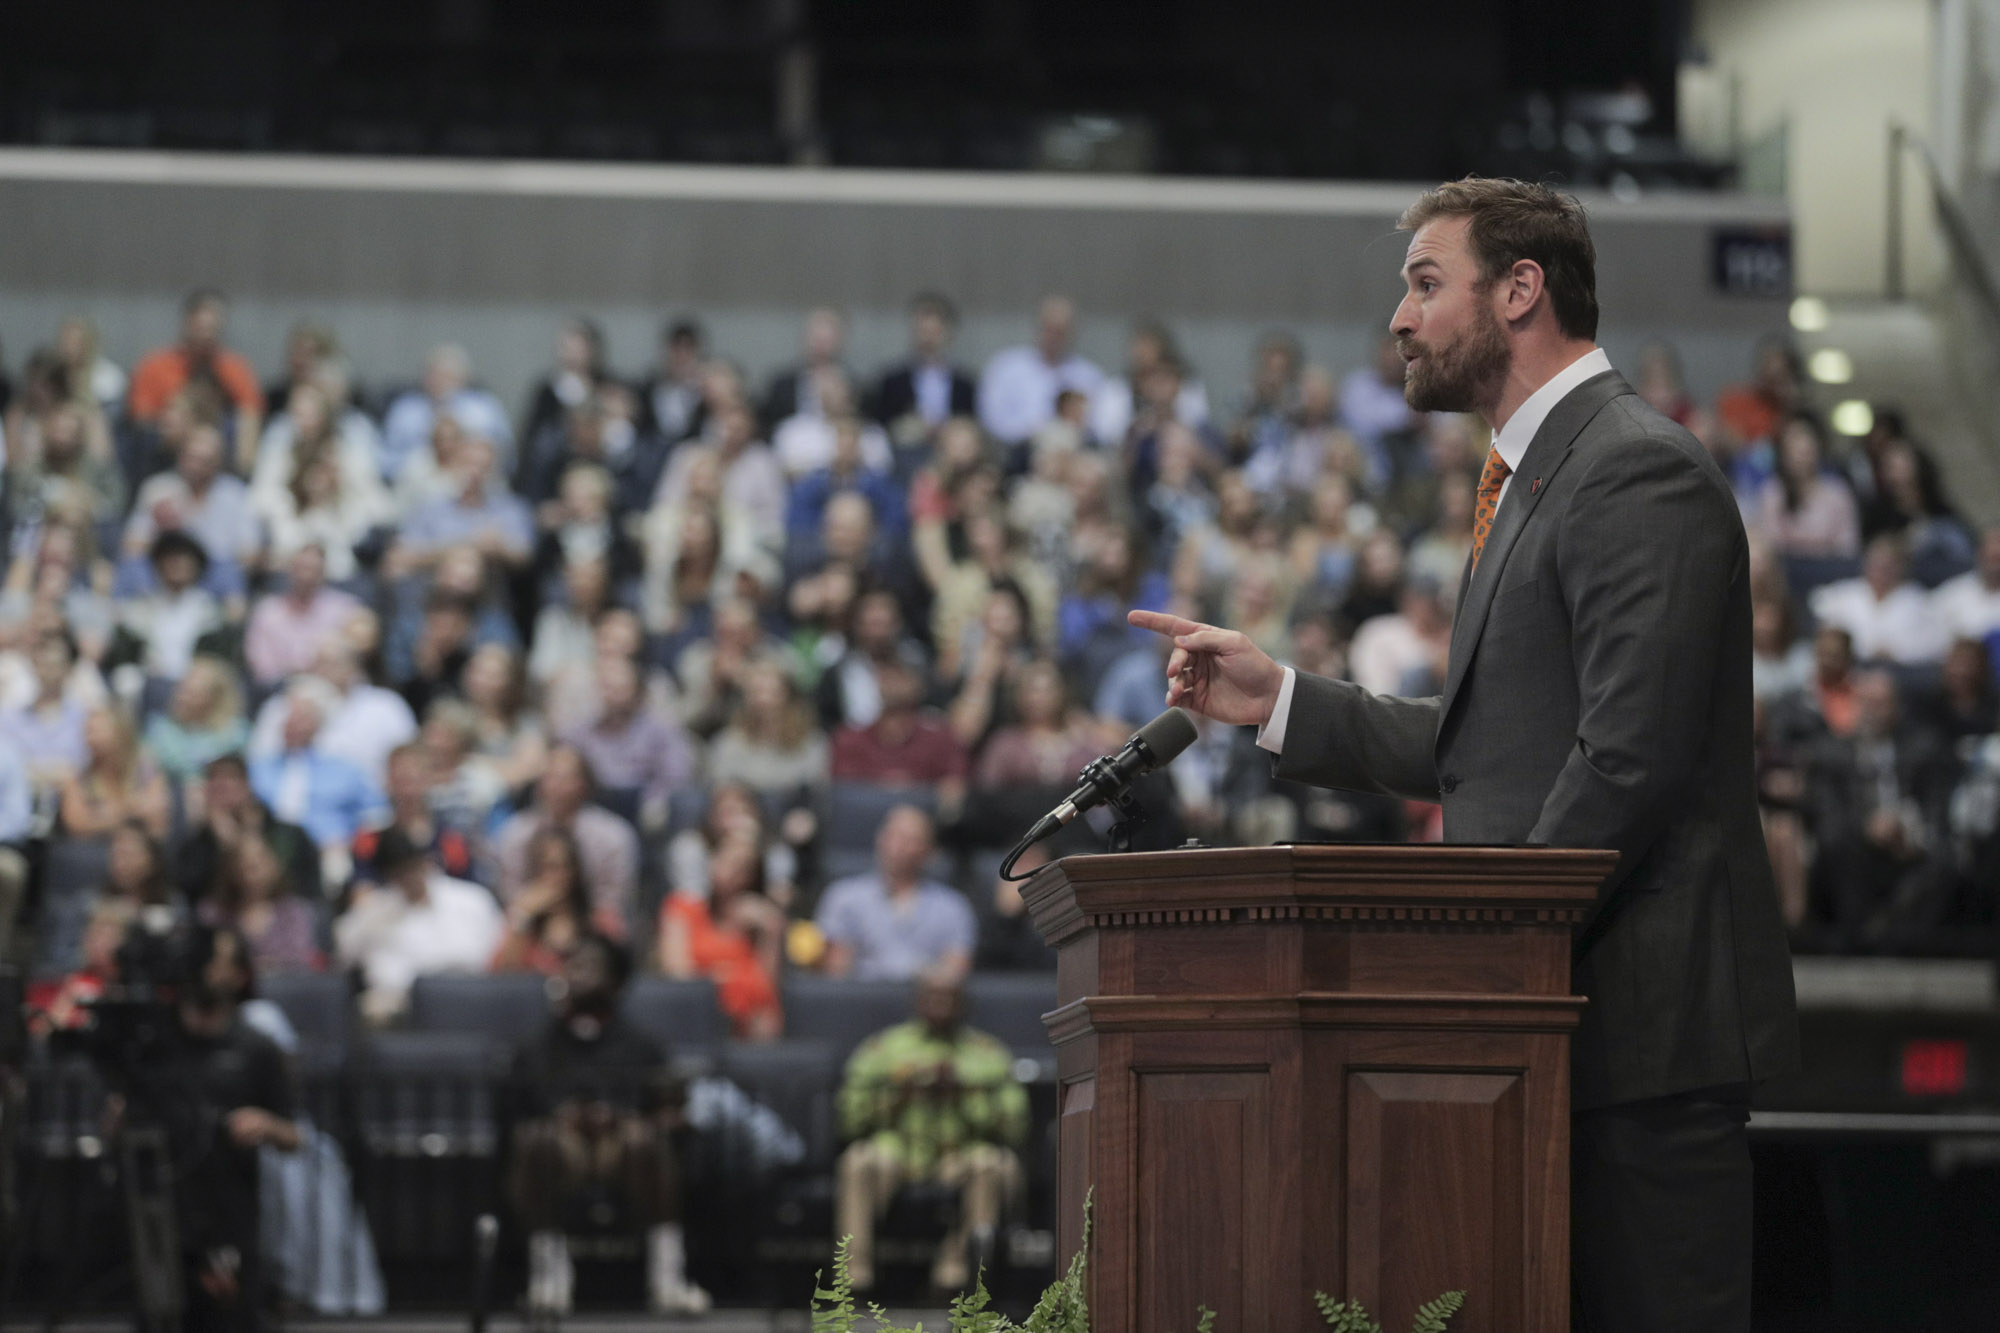 Long urged the soon-to-be-graduates to boldly seek new challenges, even when others might see them as already successful. (Photo by Sanjay Suchak, University Communications)